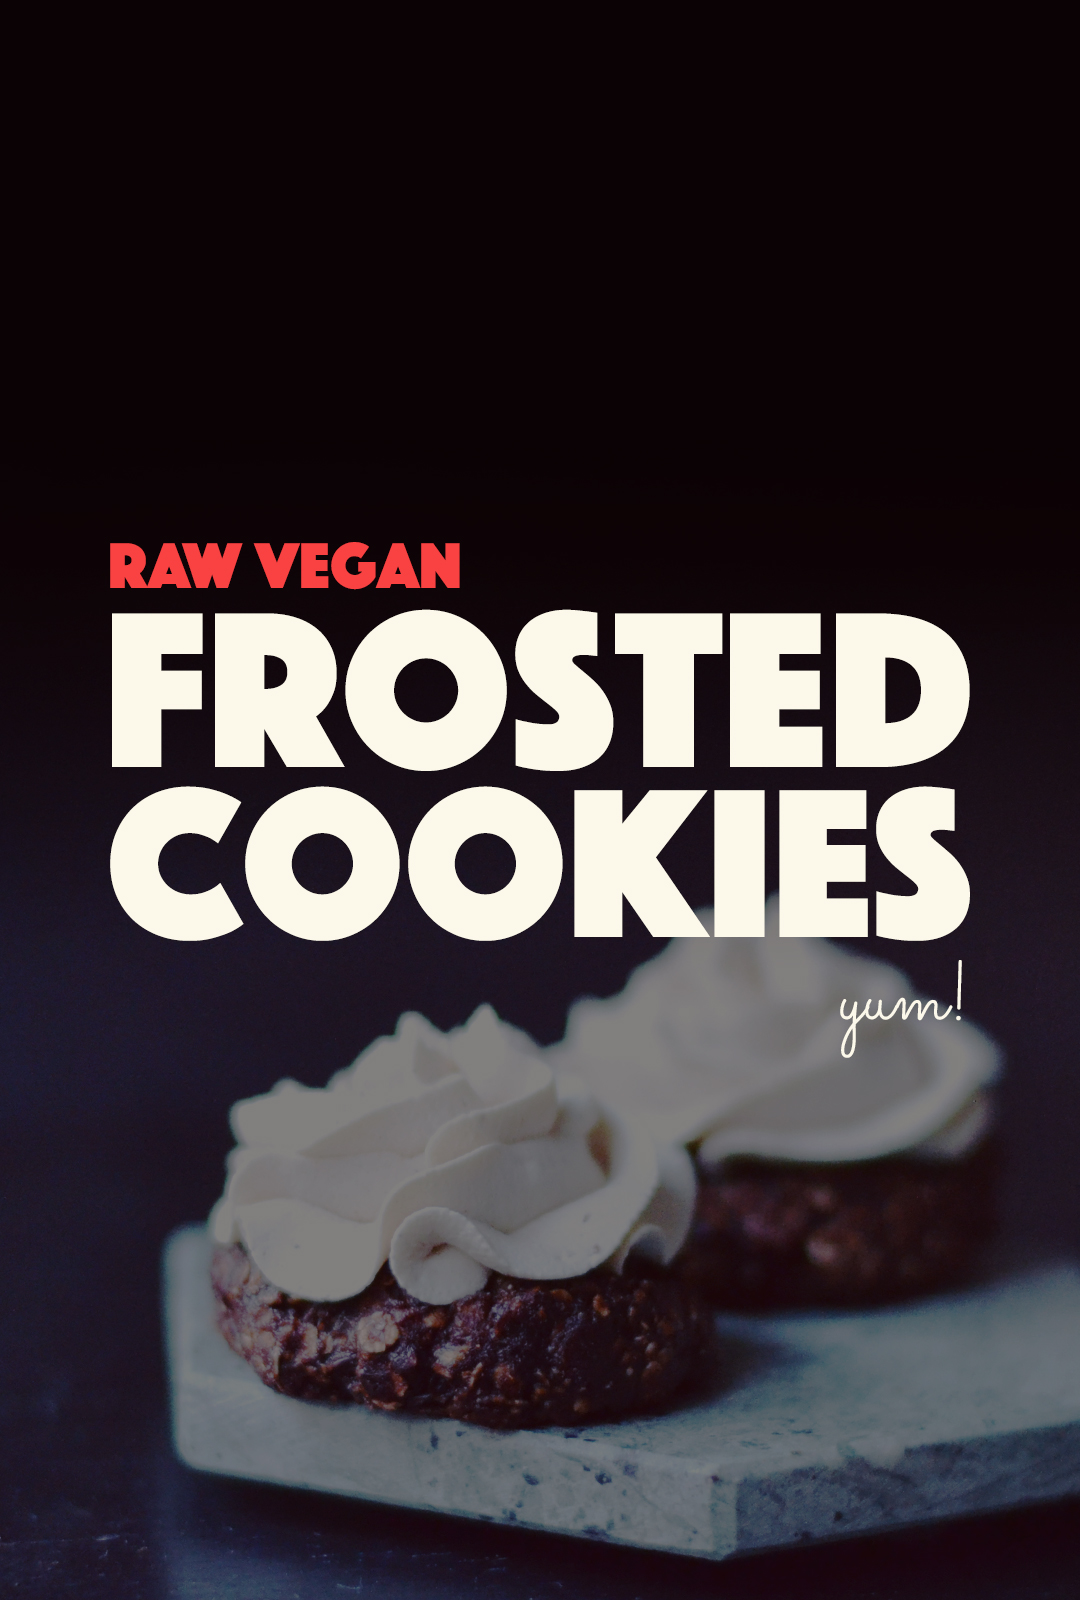 Raw Vegan Frosted Cookies | http://BananaBloom.com #rawfood #rawbaking #cookies #frosting